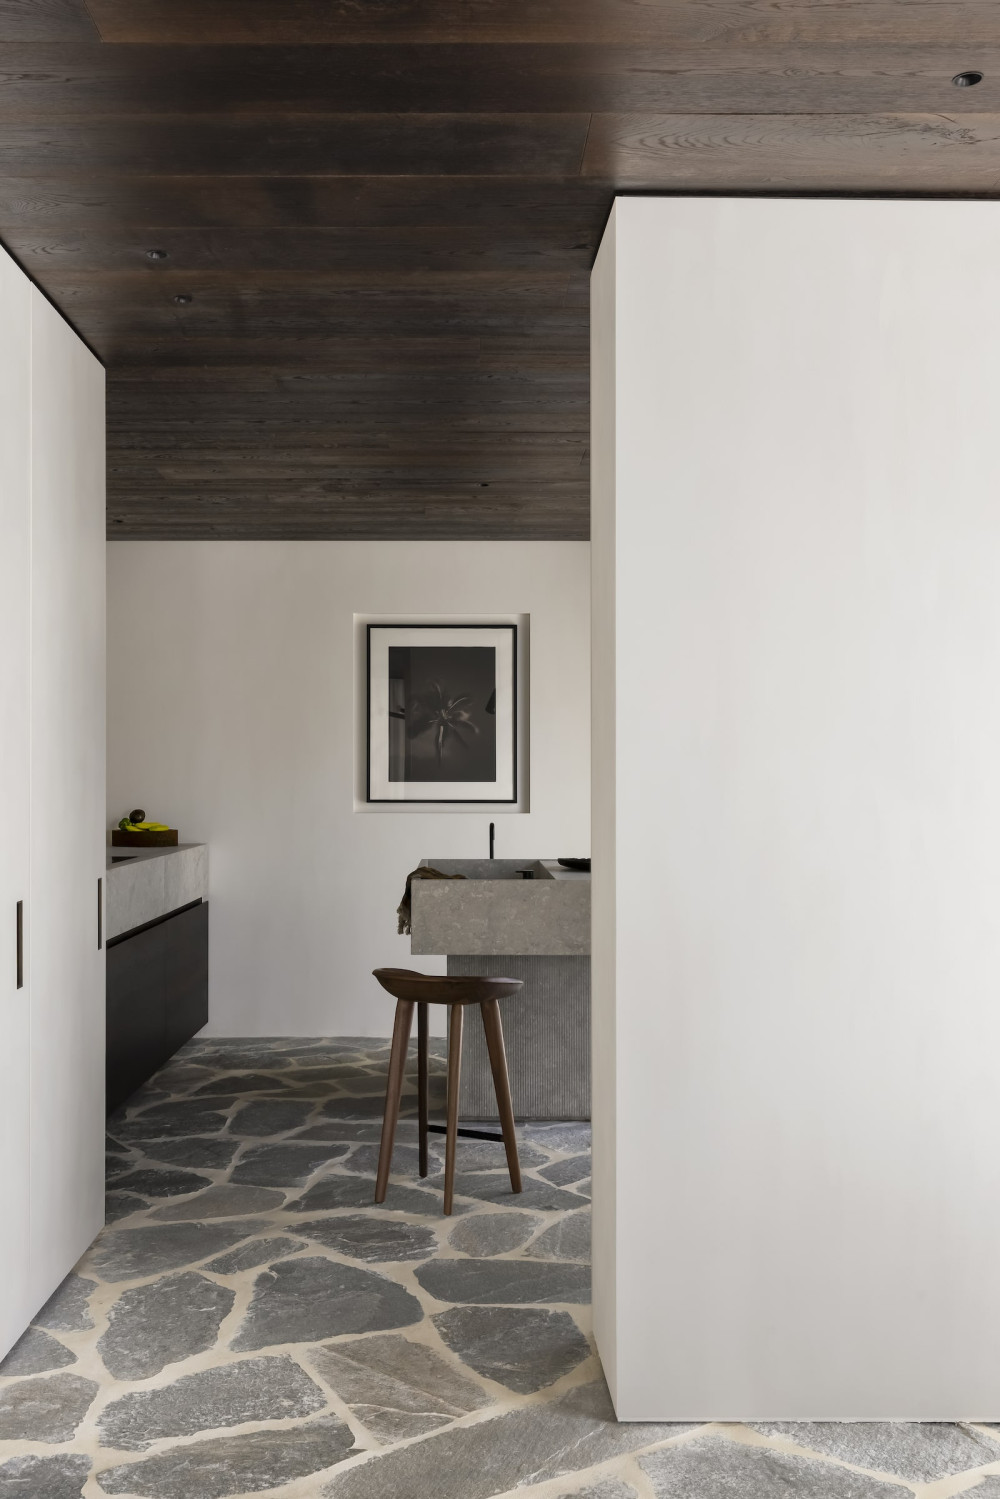 ignant-architecture-andy-kerstens-mud-residence-08.jpg